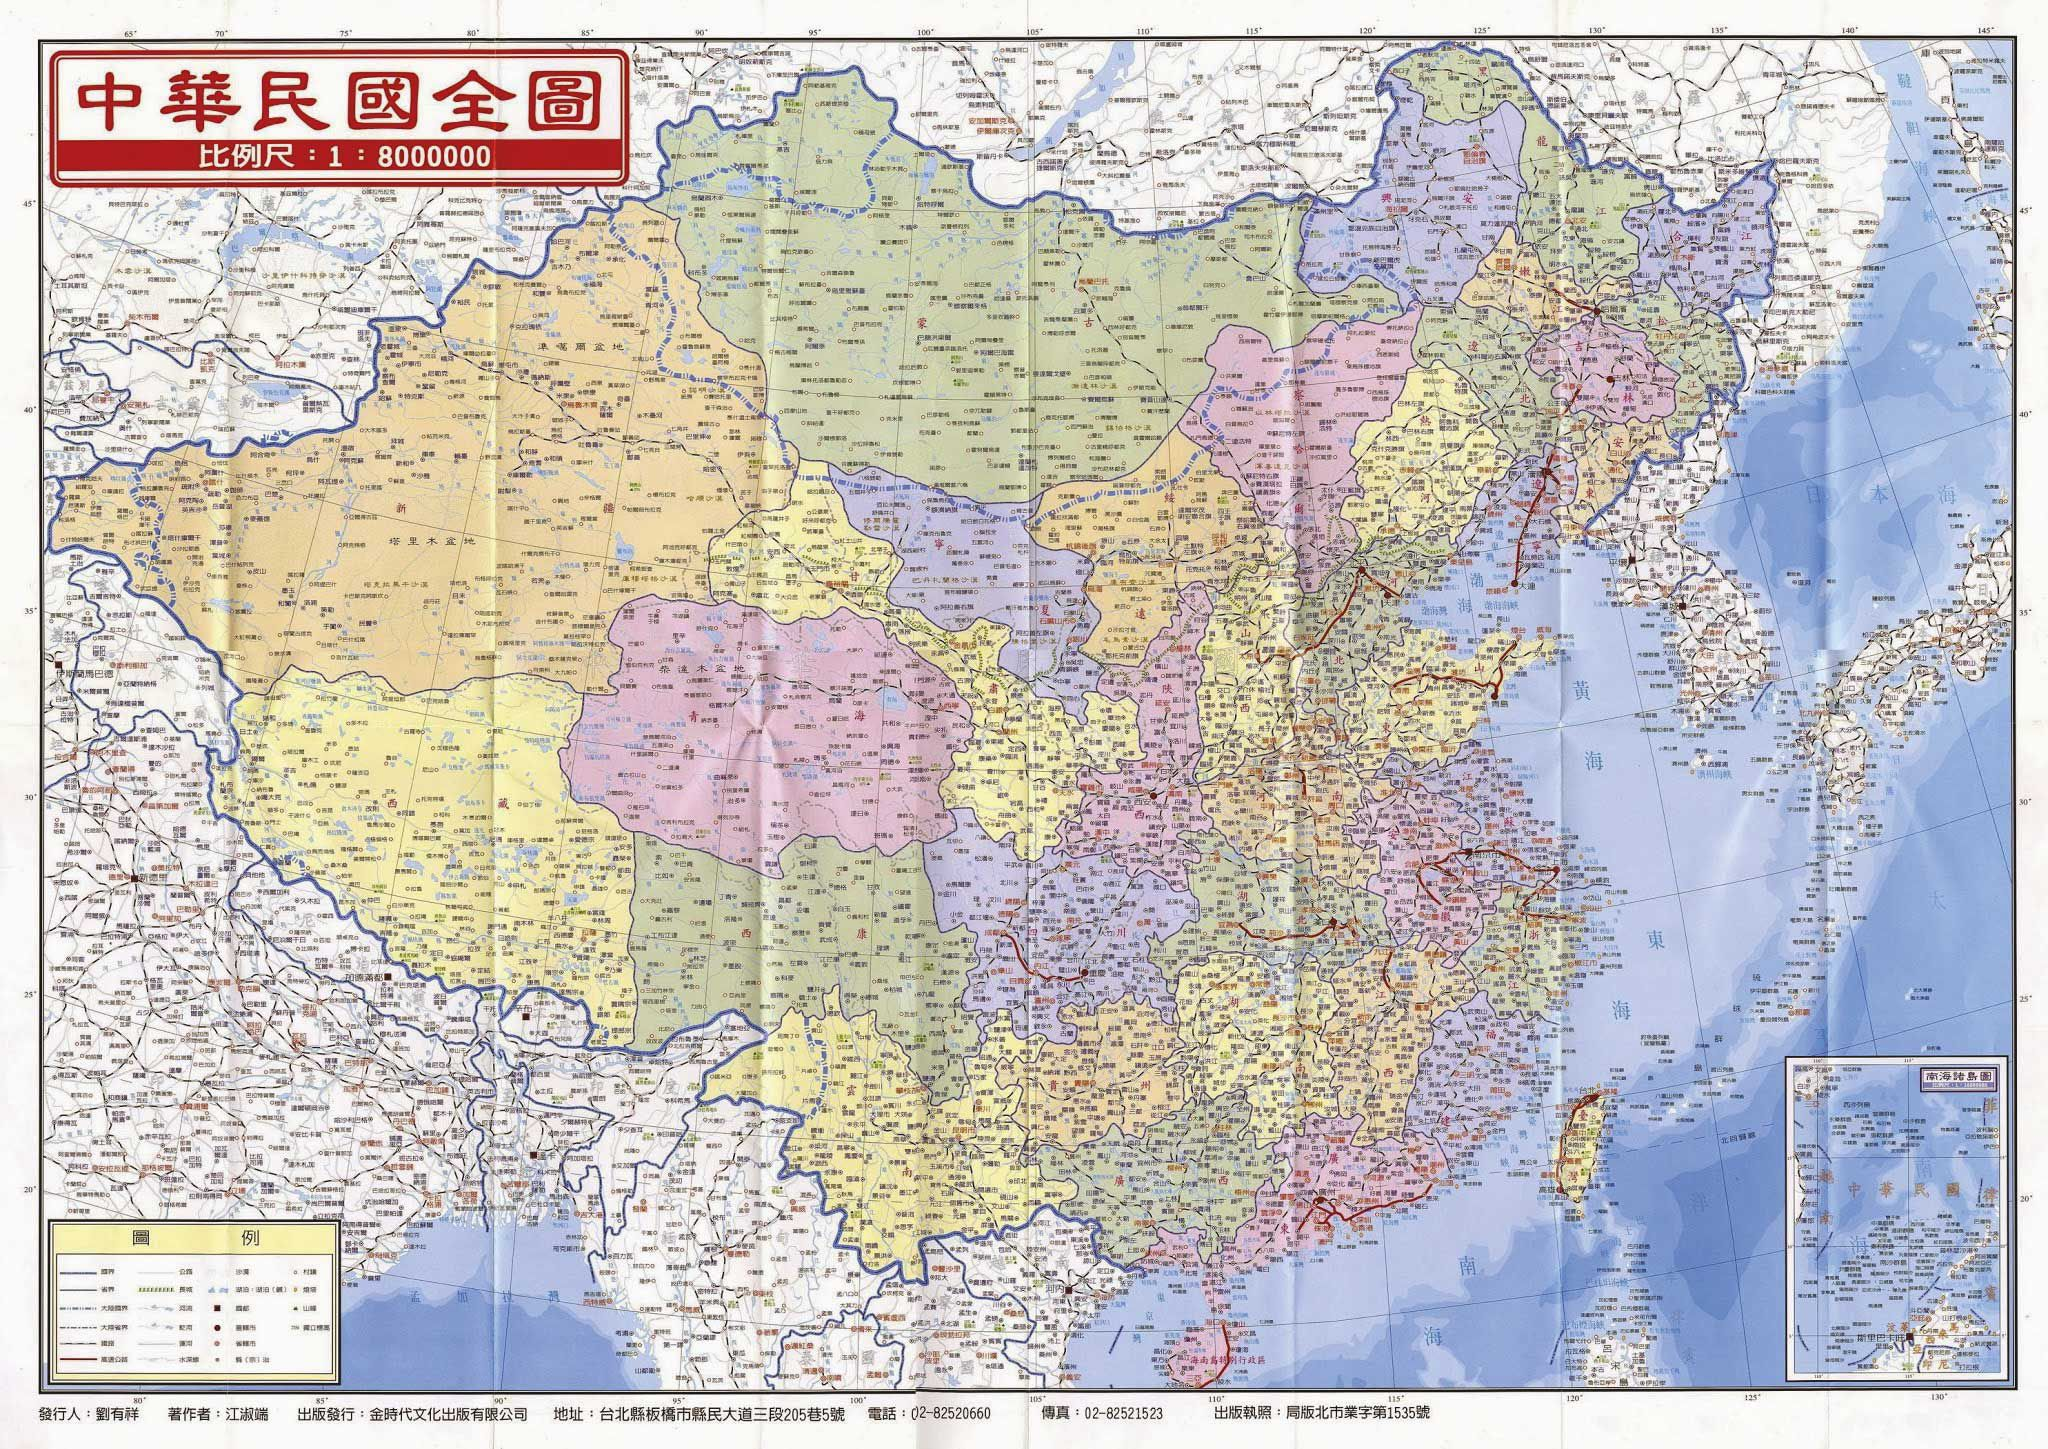 repubblica_cina_golden_time_cuscito_1118